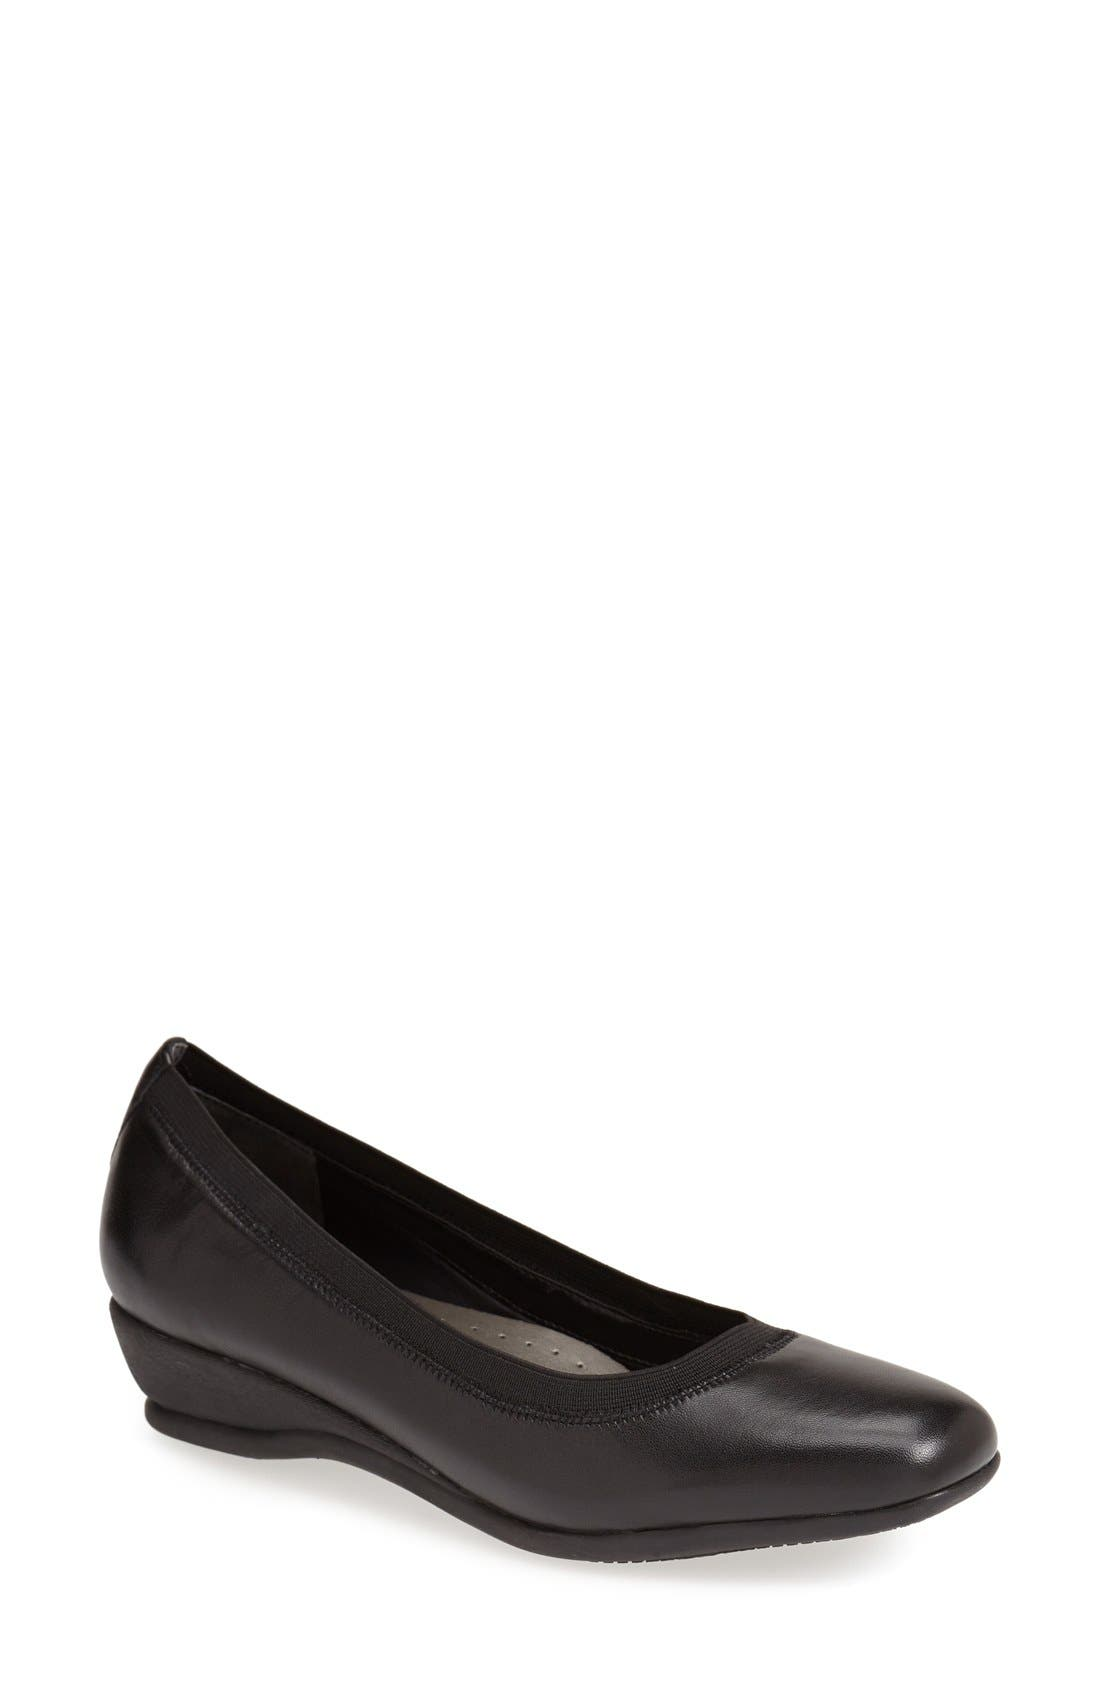 Womens Trotters Lansing Pumps Black